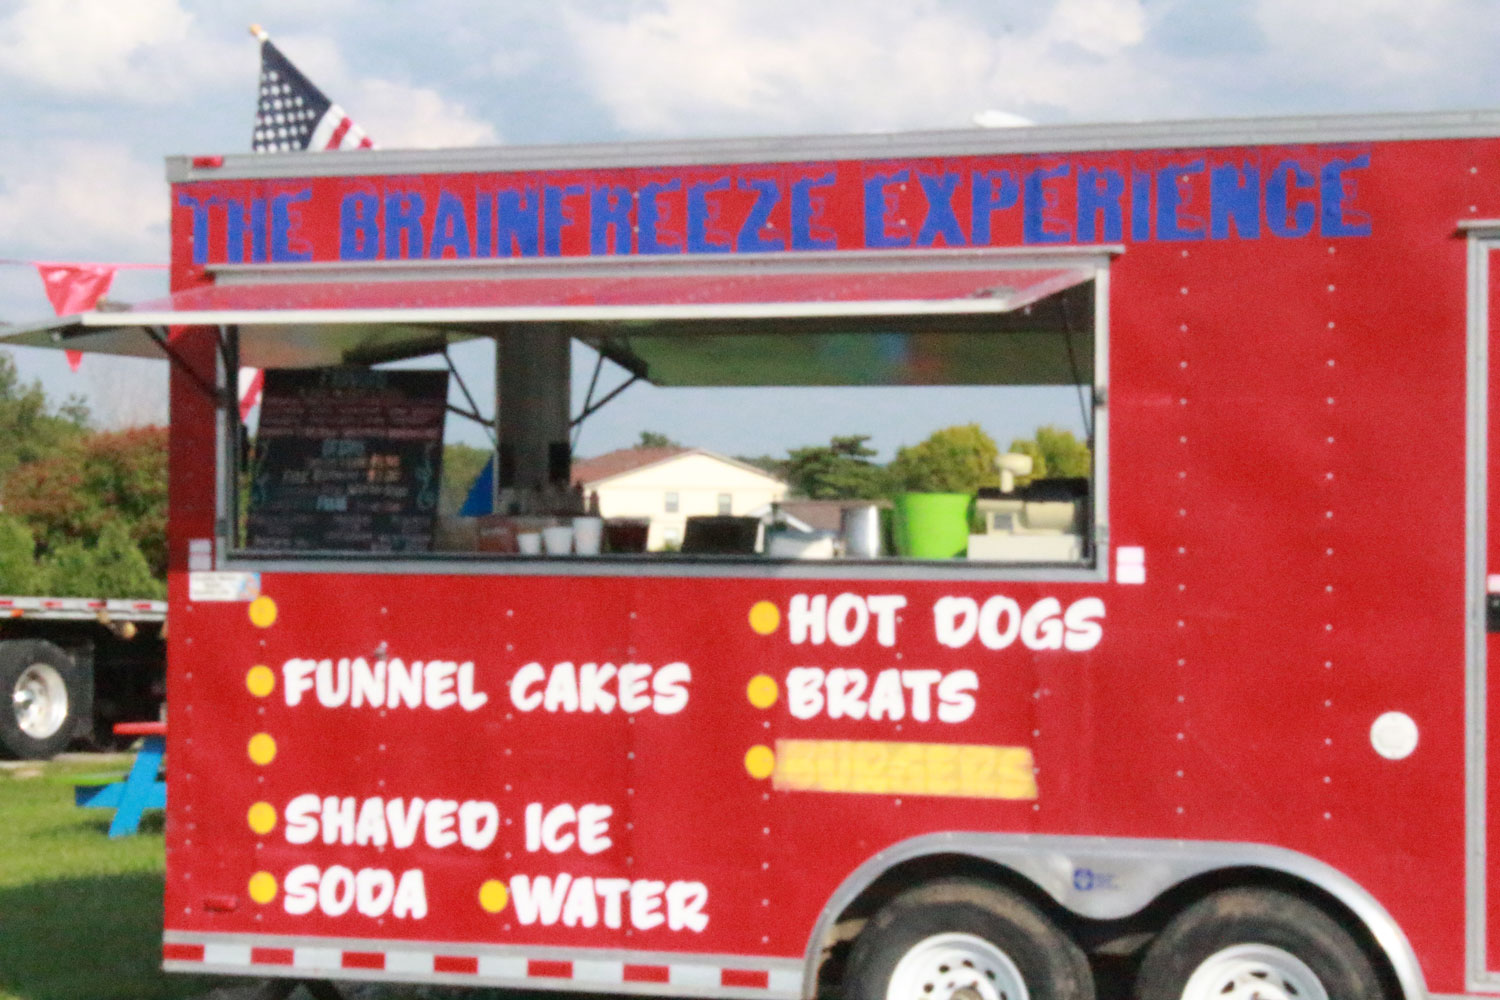 The Brain Freeze Experience sits off Harvester at 3790 Harvester Road. The food truck specializes in their famous funnel cakes and shaved ice. Tyler Foulon and his sister opened The Brain Freeze experience in May, and plan to expand their business in the next few years.